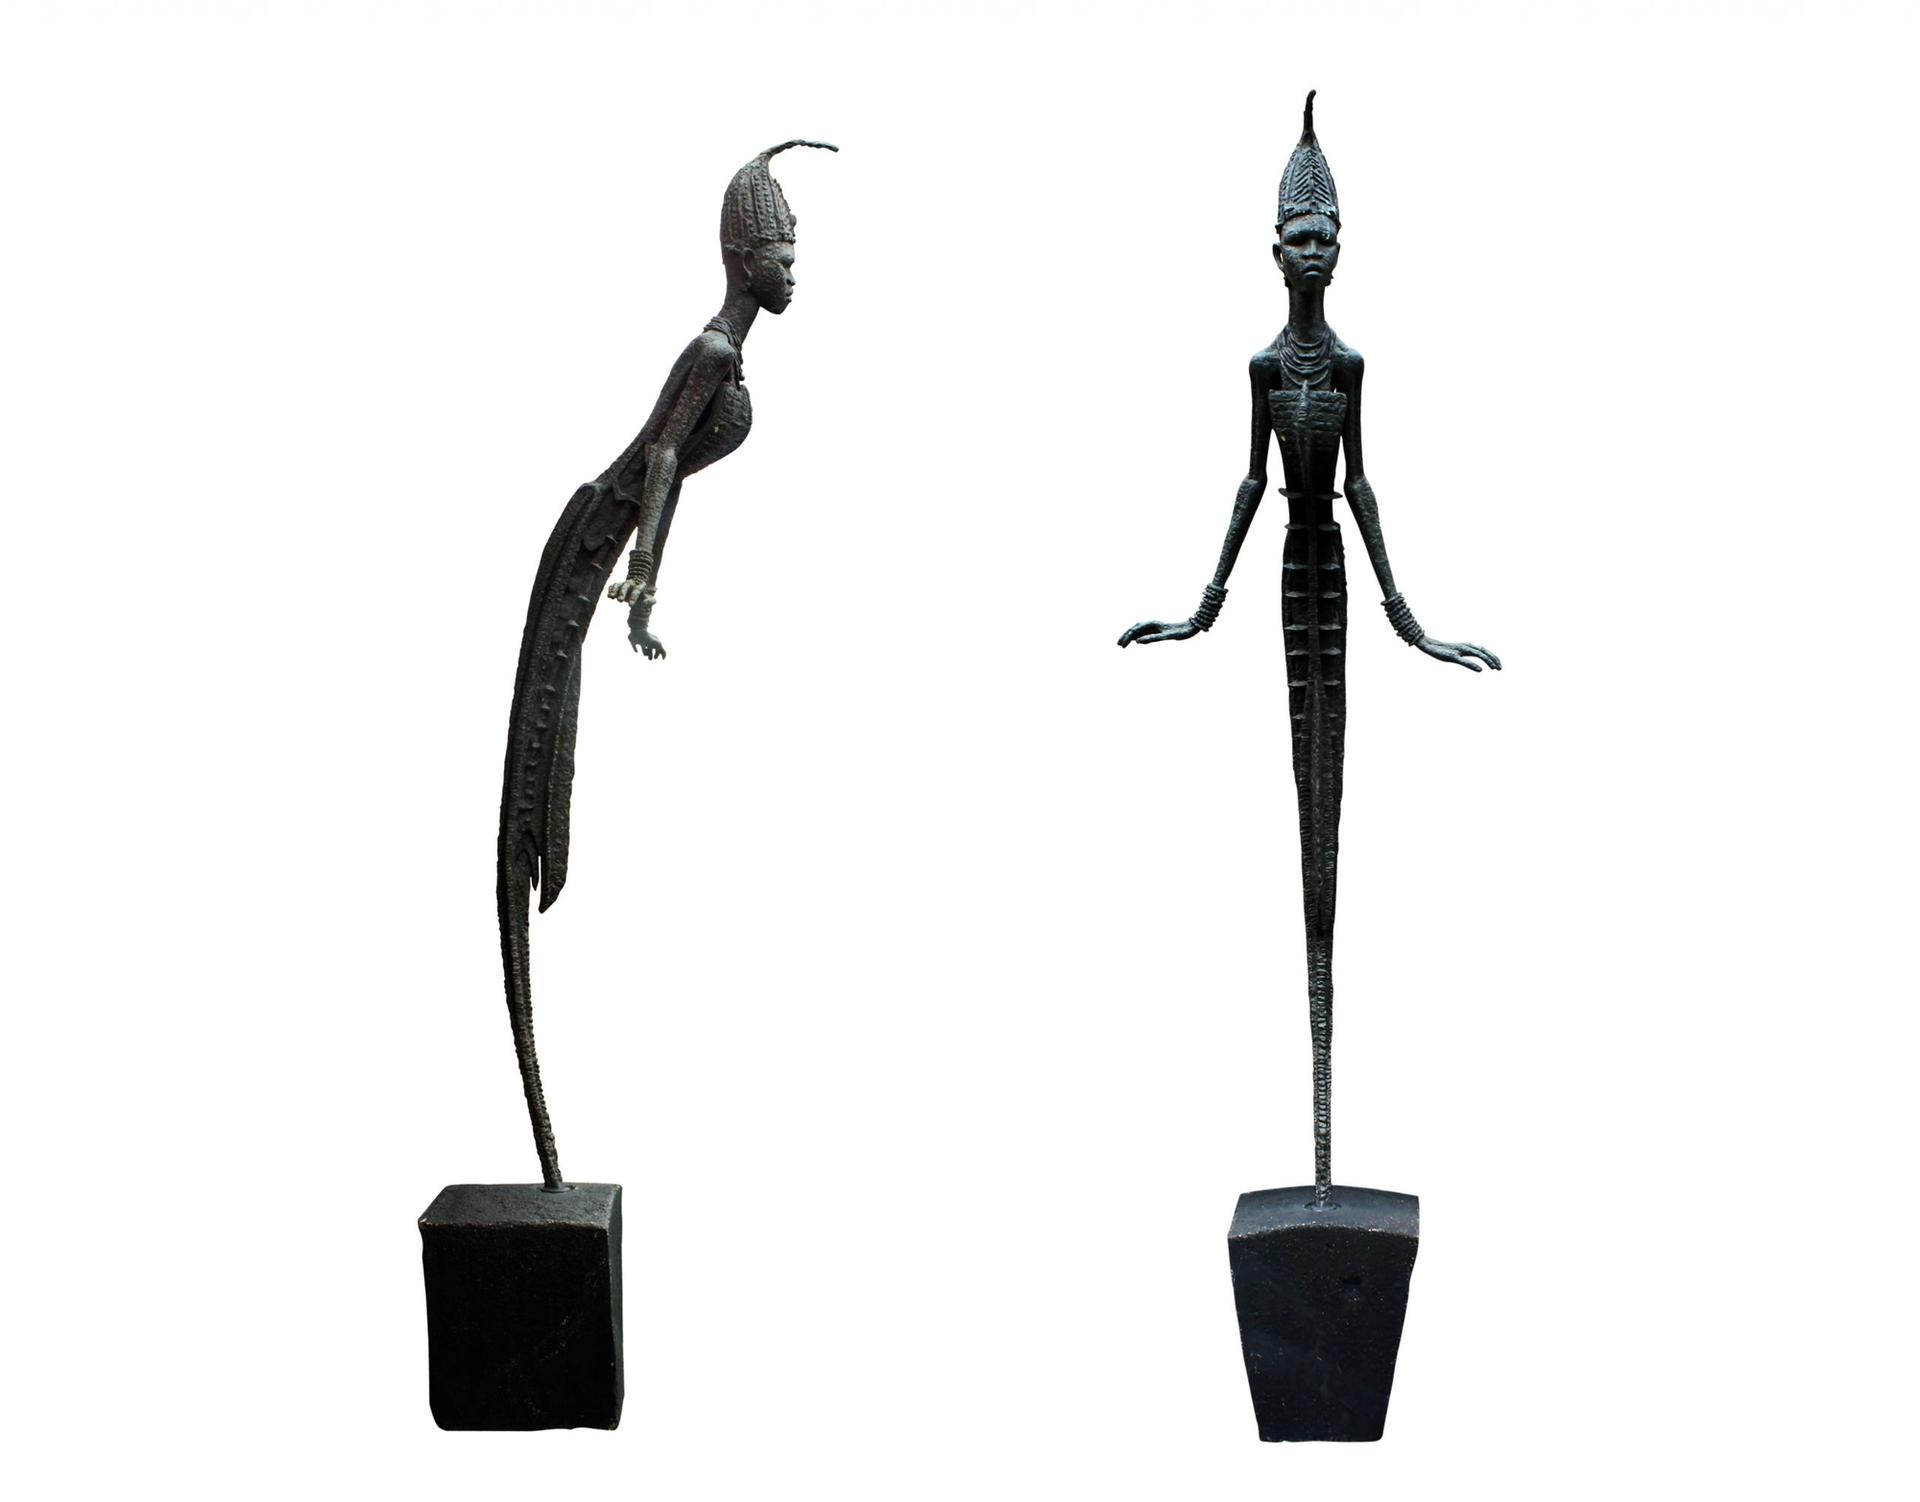 Anyanwu symbolises the powerful earth goddess Ani, who is worshipped by the Igbo group from which the Nigerian artist Ben Enwonwu hails